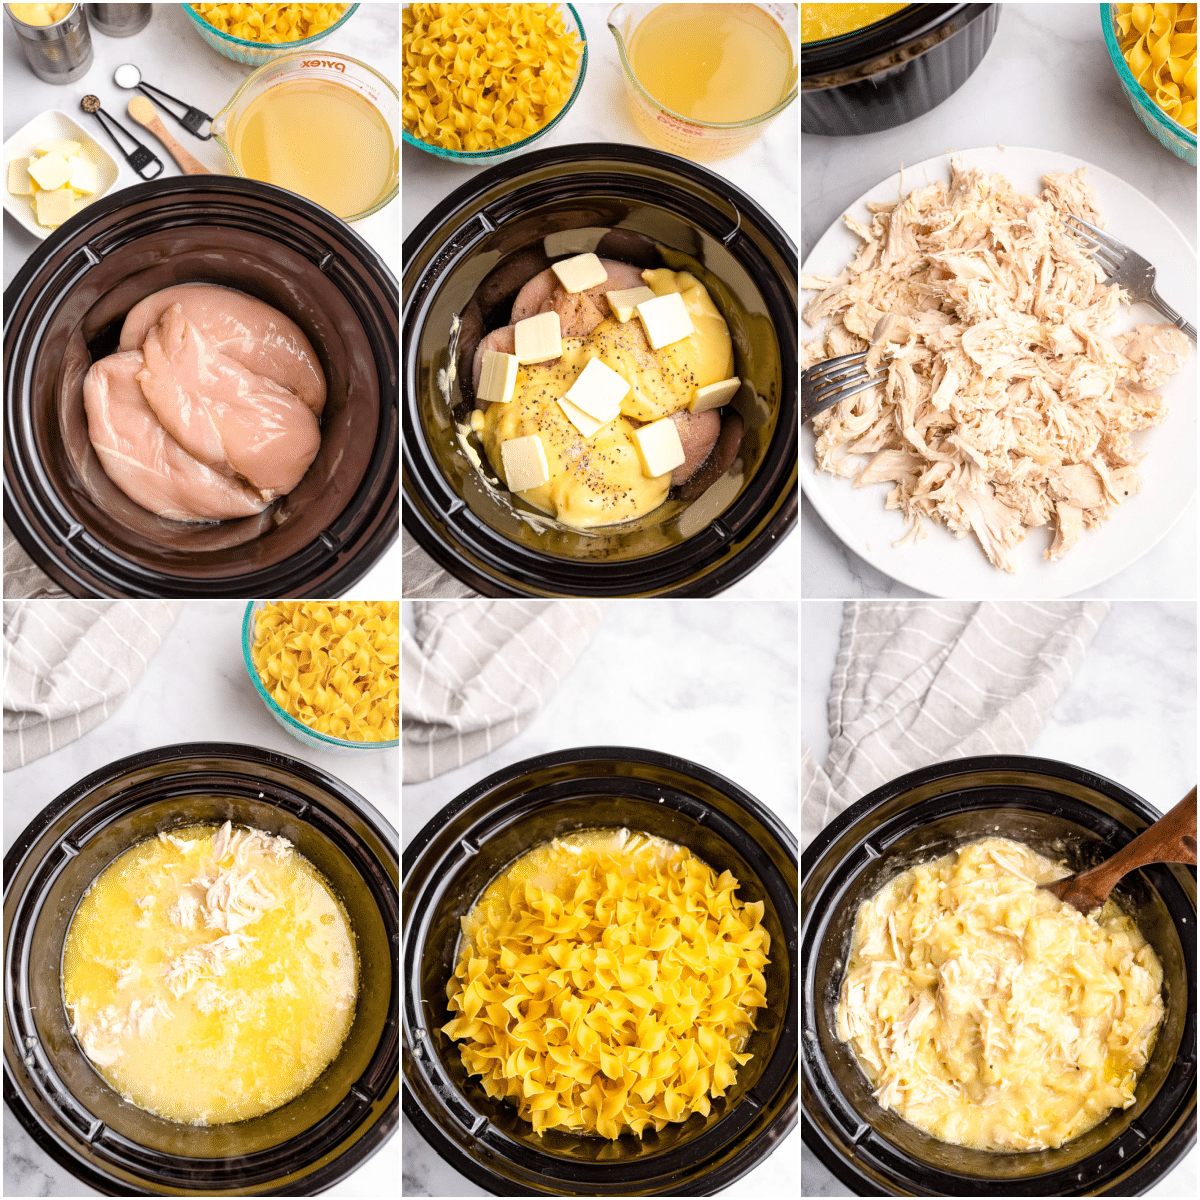 step by step images showing how to make instant pot chicken and noodles